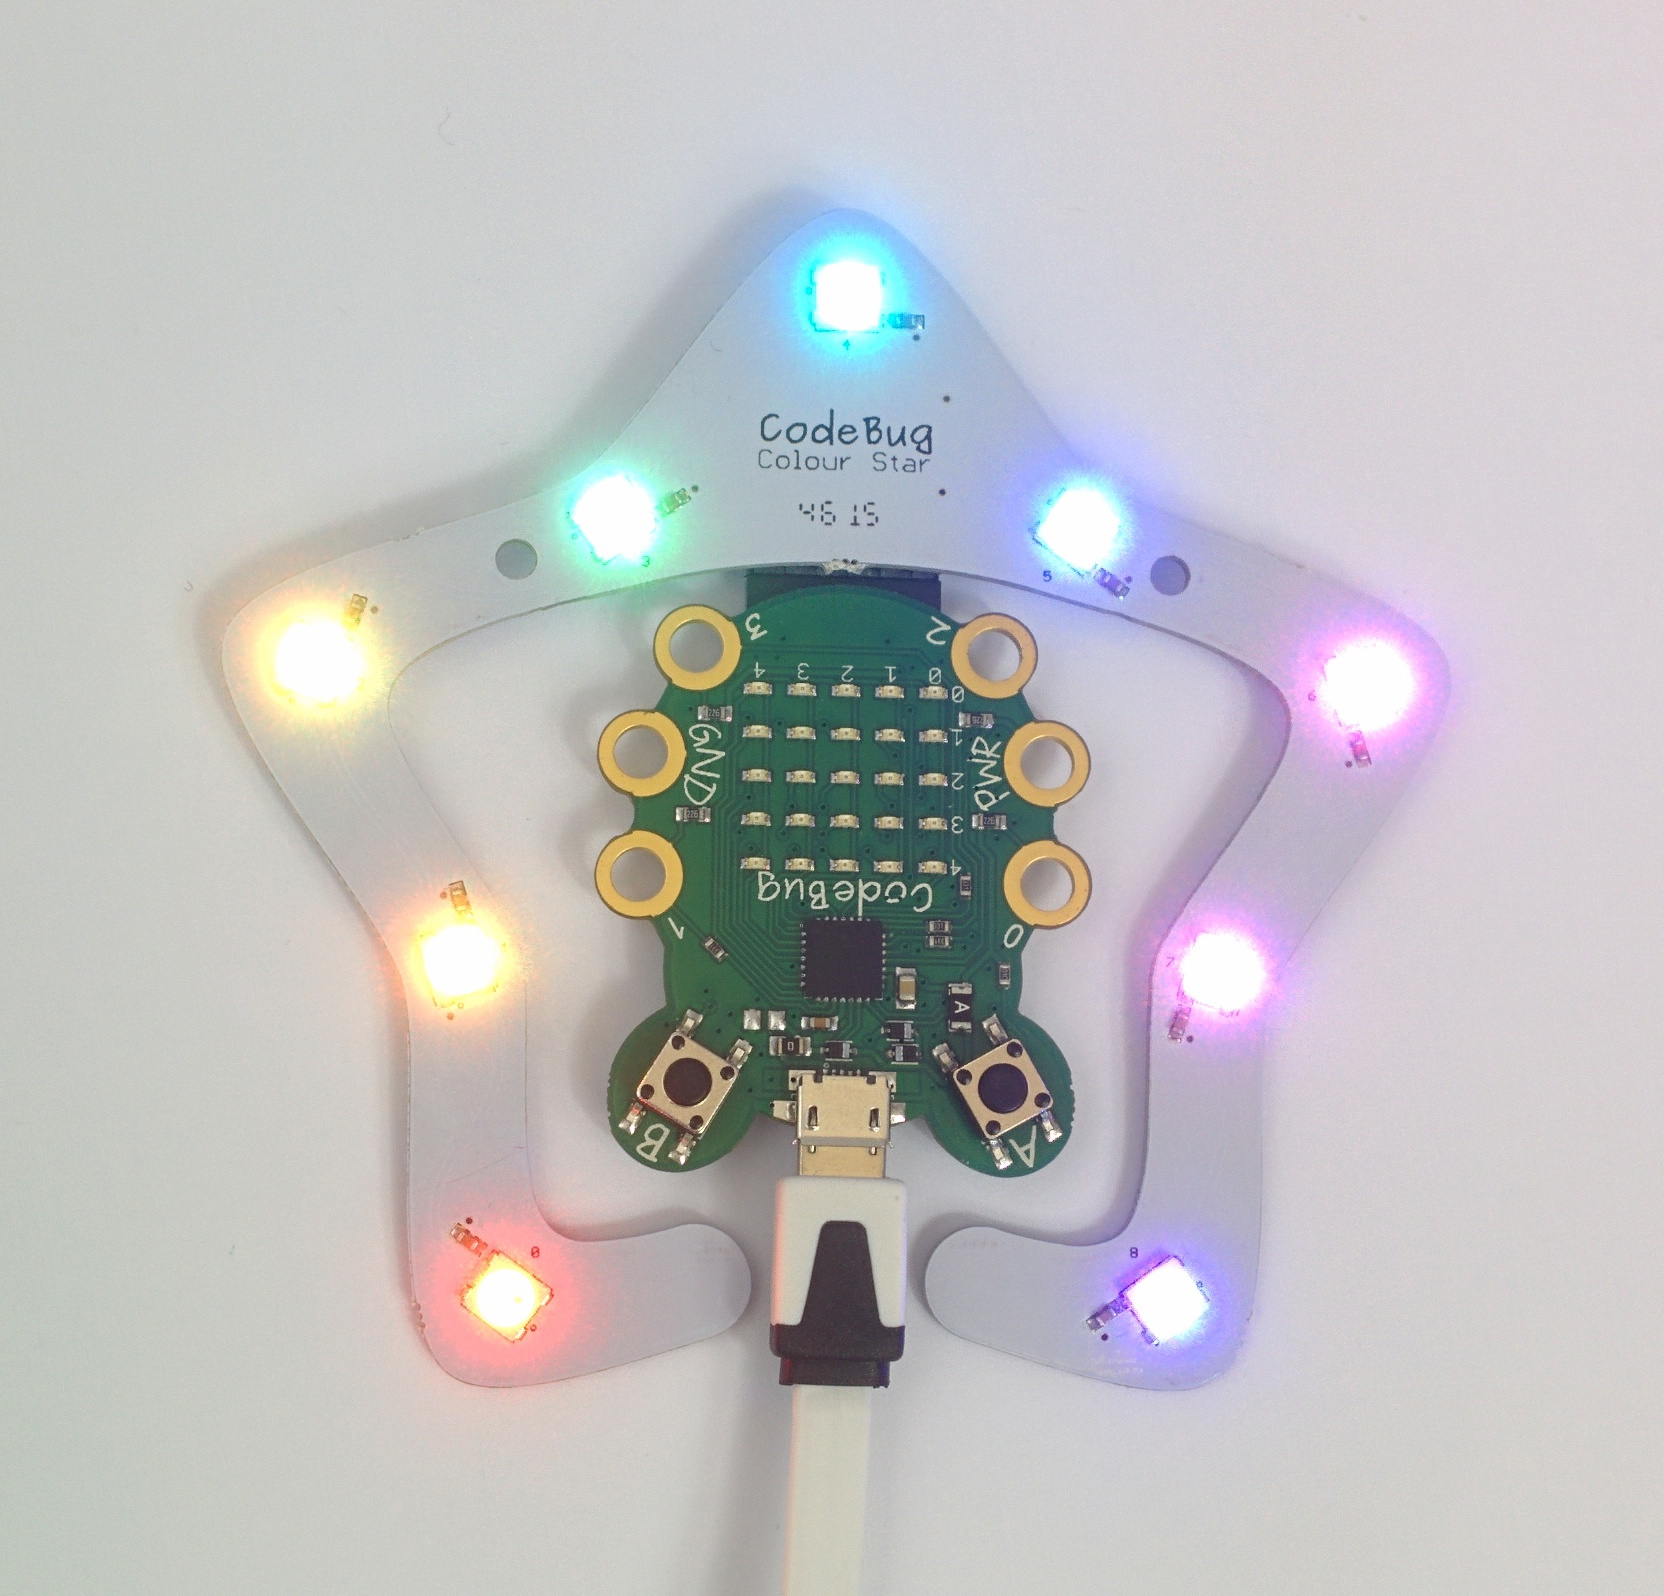 CodeBug ColourStar